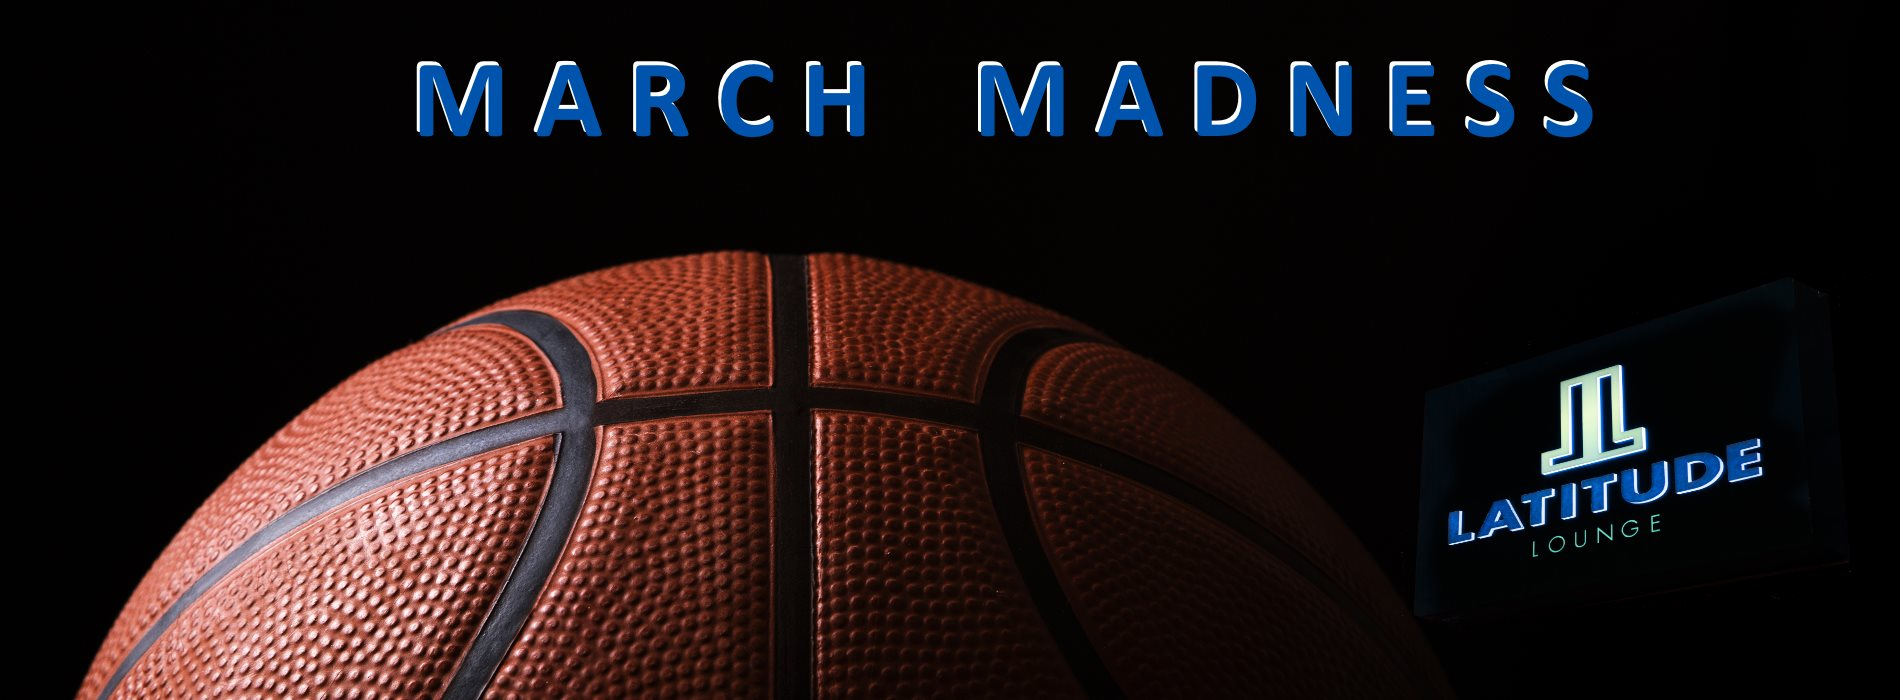 Join us for March Madness 2019